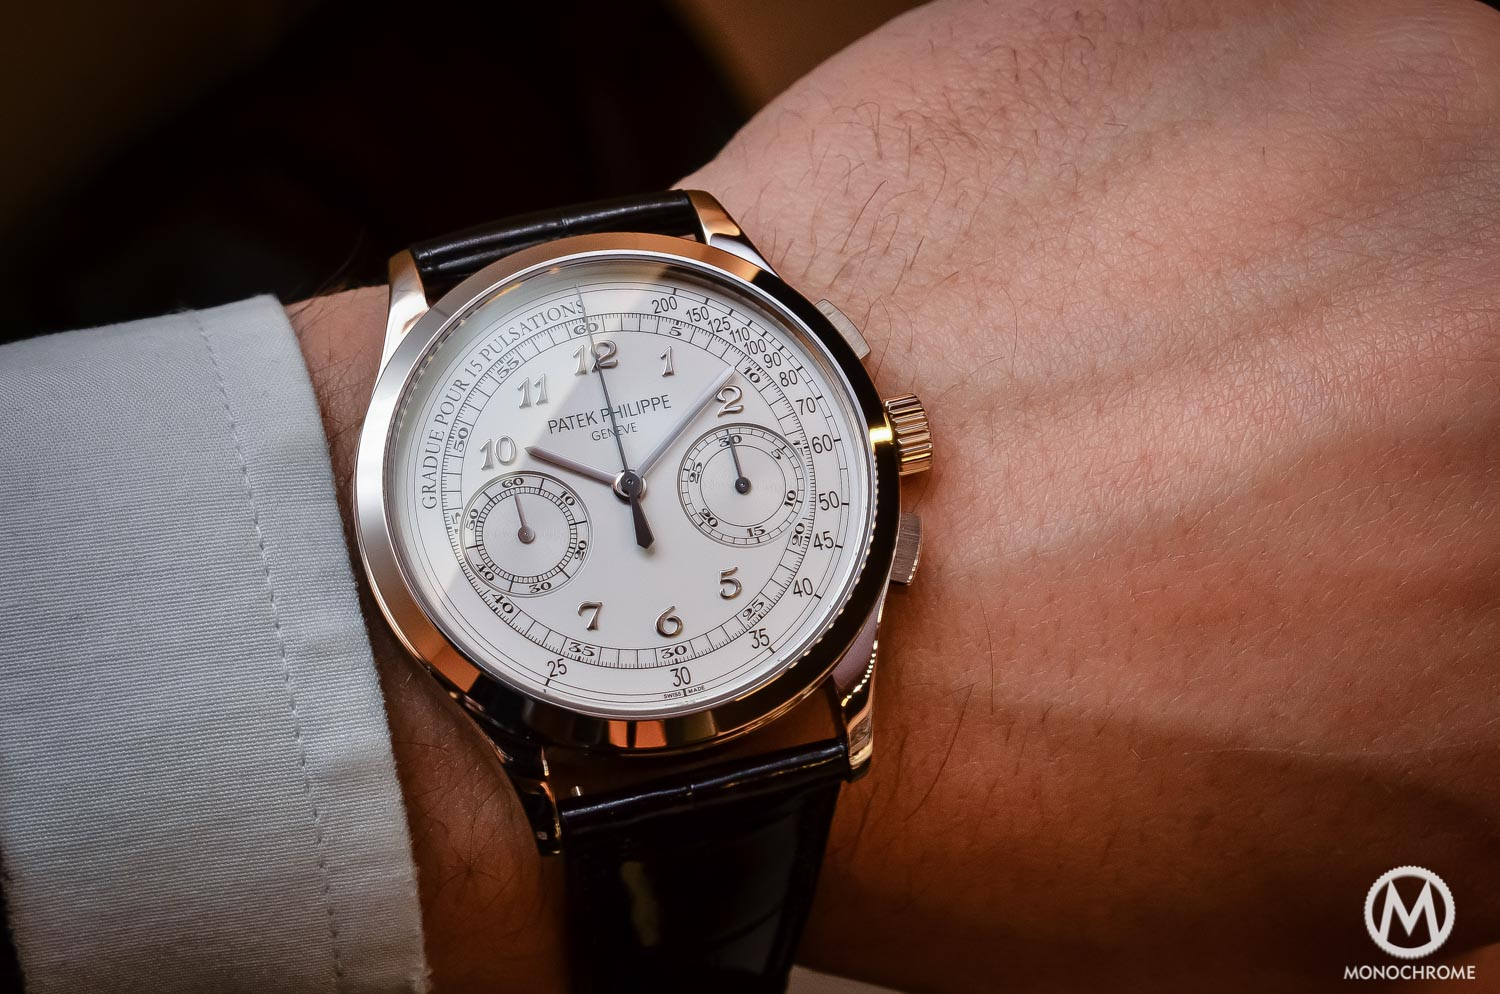 Why The Patek Philippe 5170g Chronograph Is Such A Cool Watch